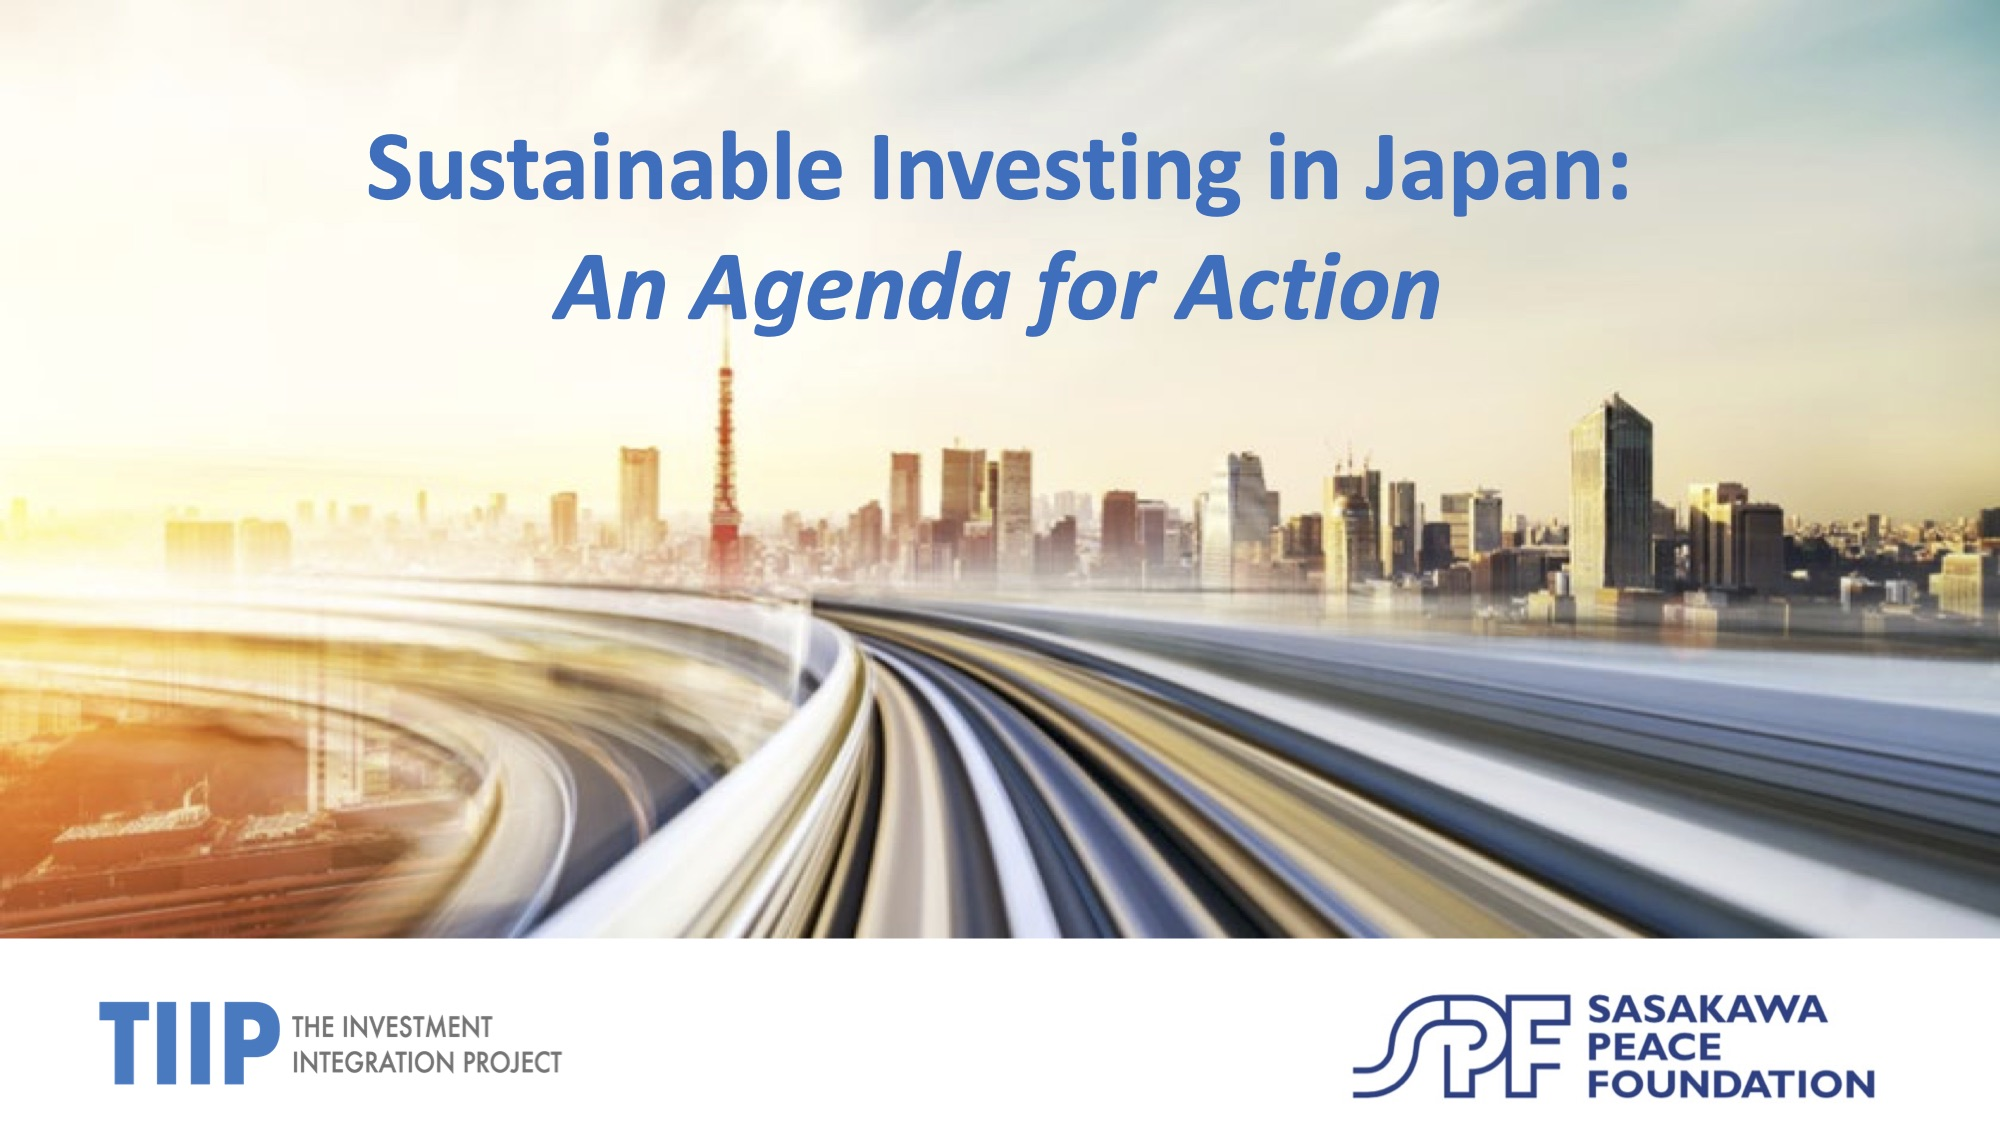 「Sustainable Investing in Japan:An Agenda for Action」(社会的インパクト投資フォーラム プレゼンテーション資料)